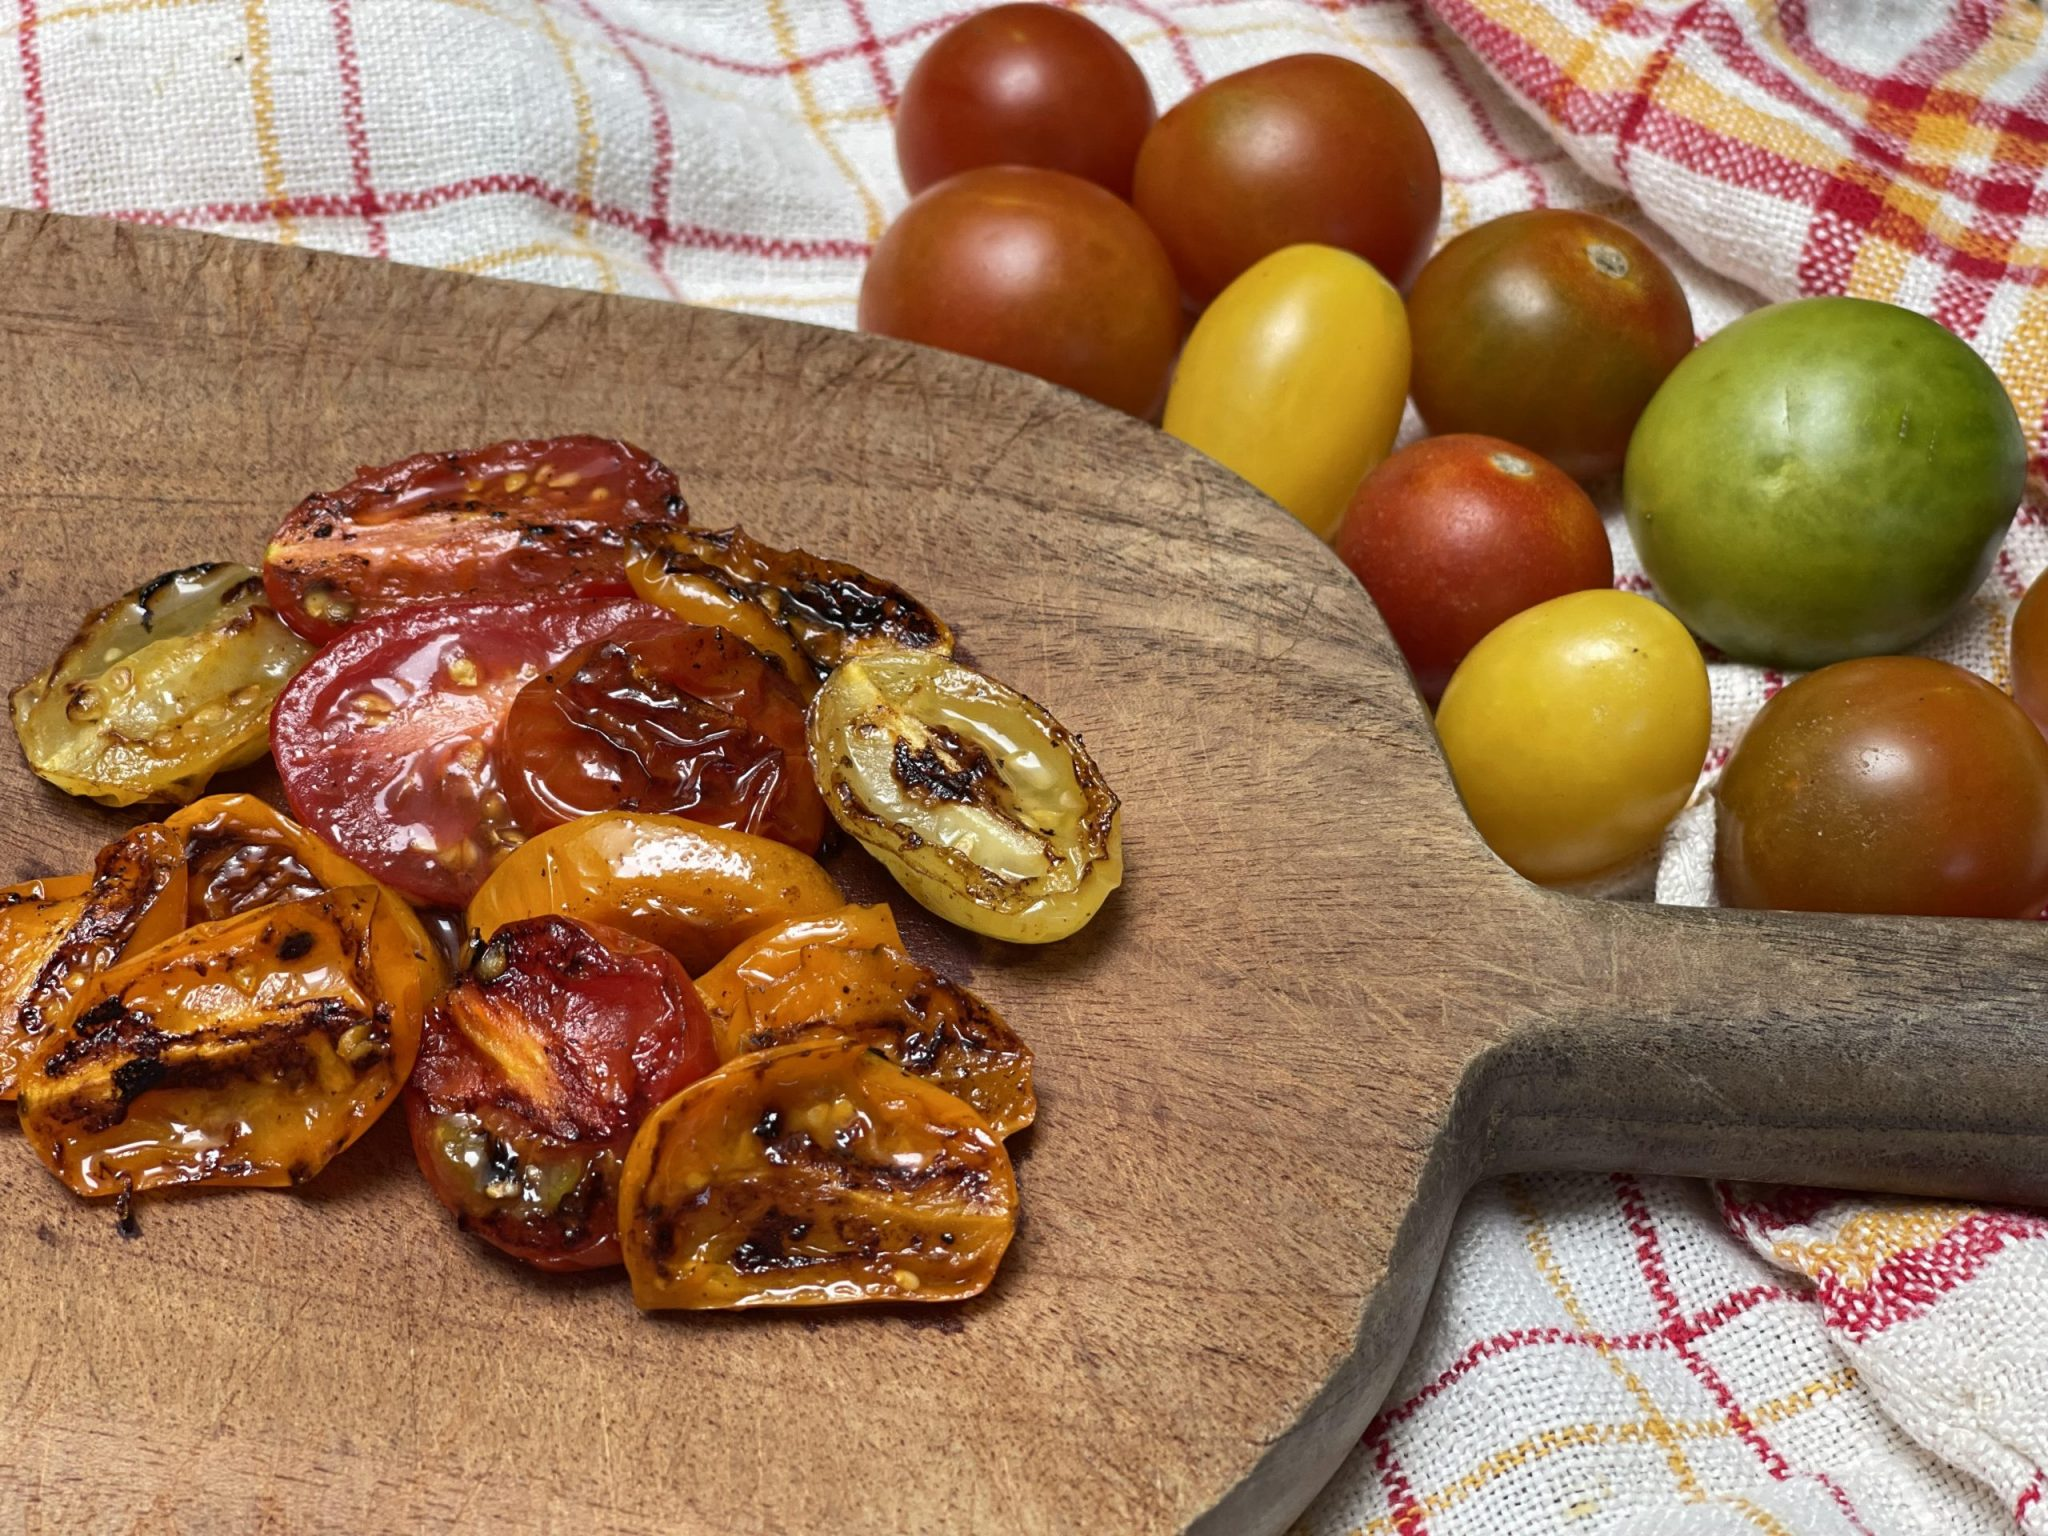 Blistered cherry tomatoes